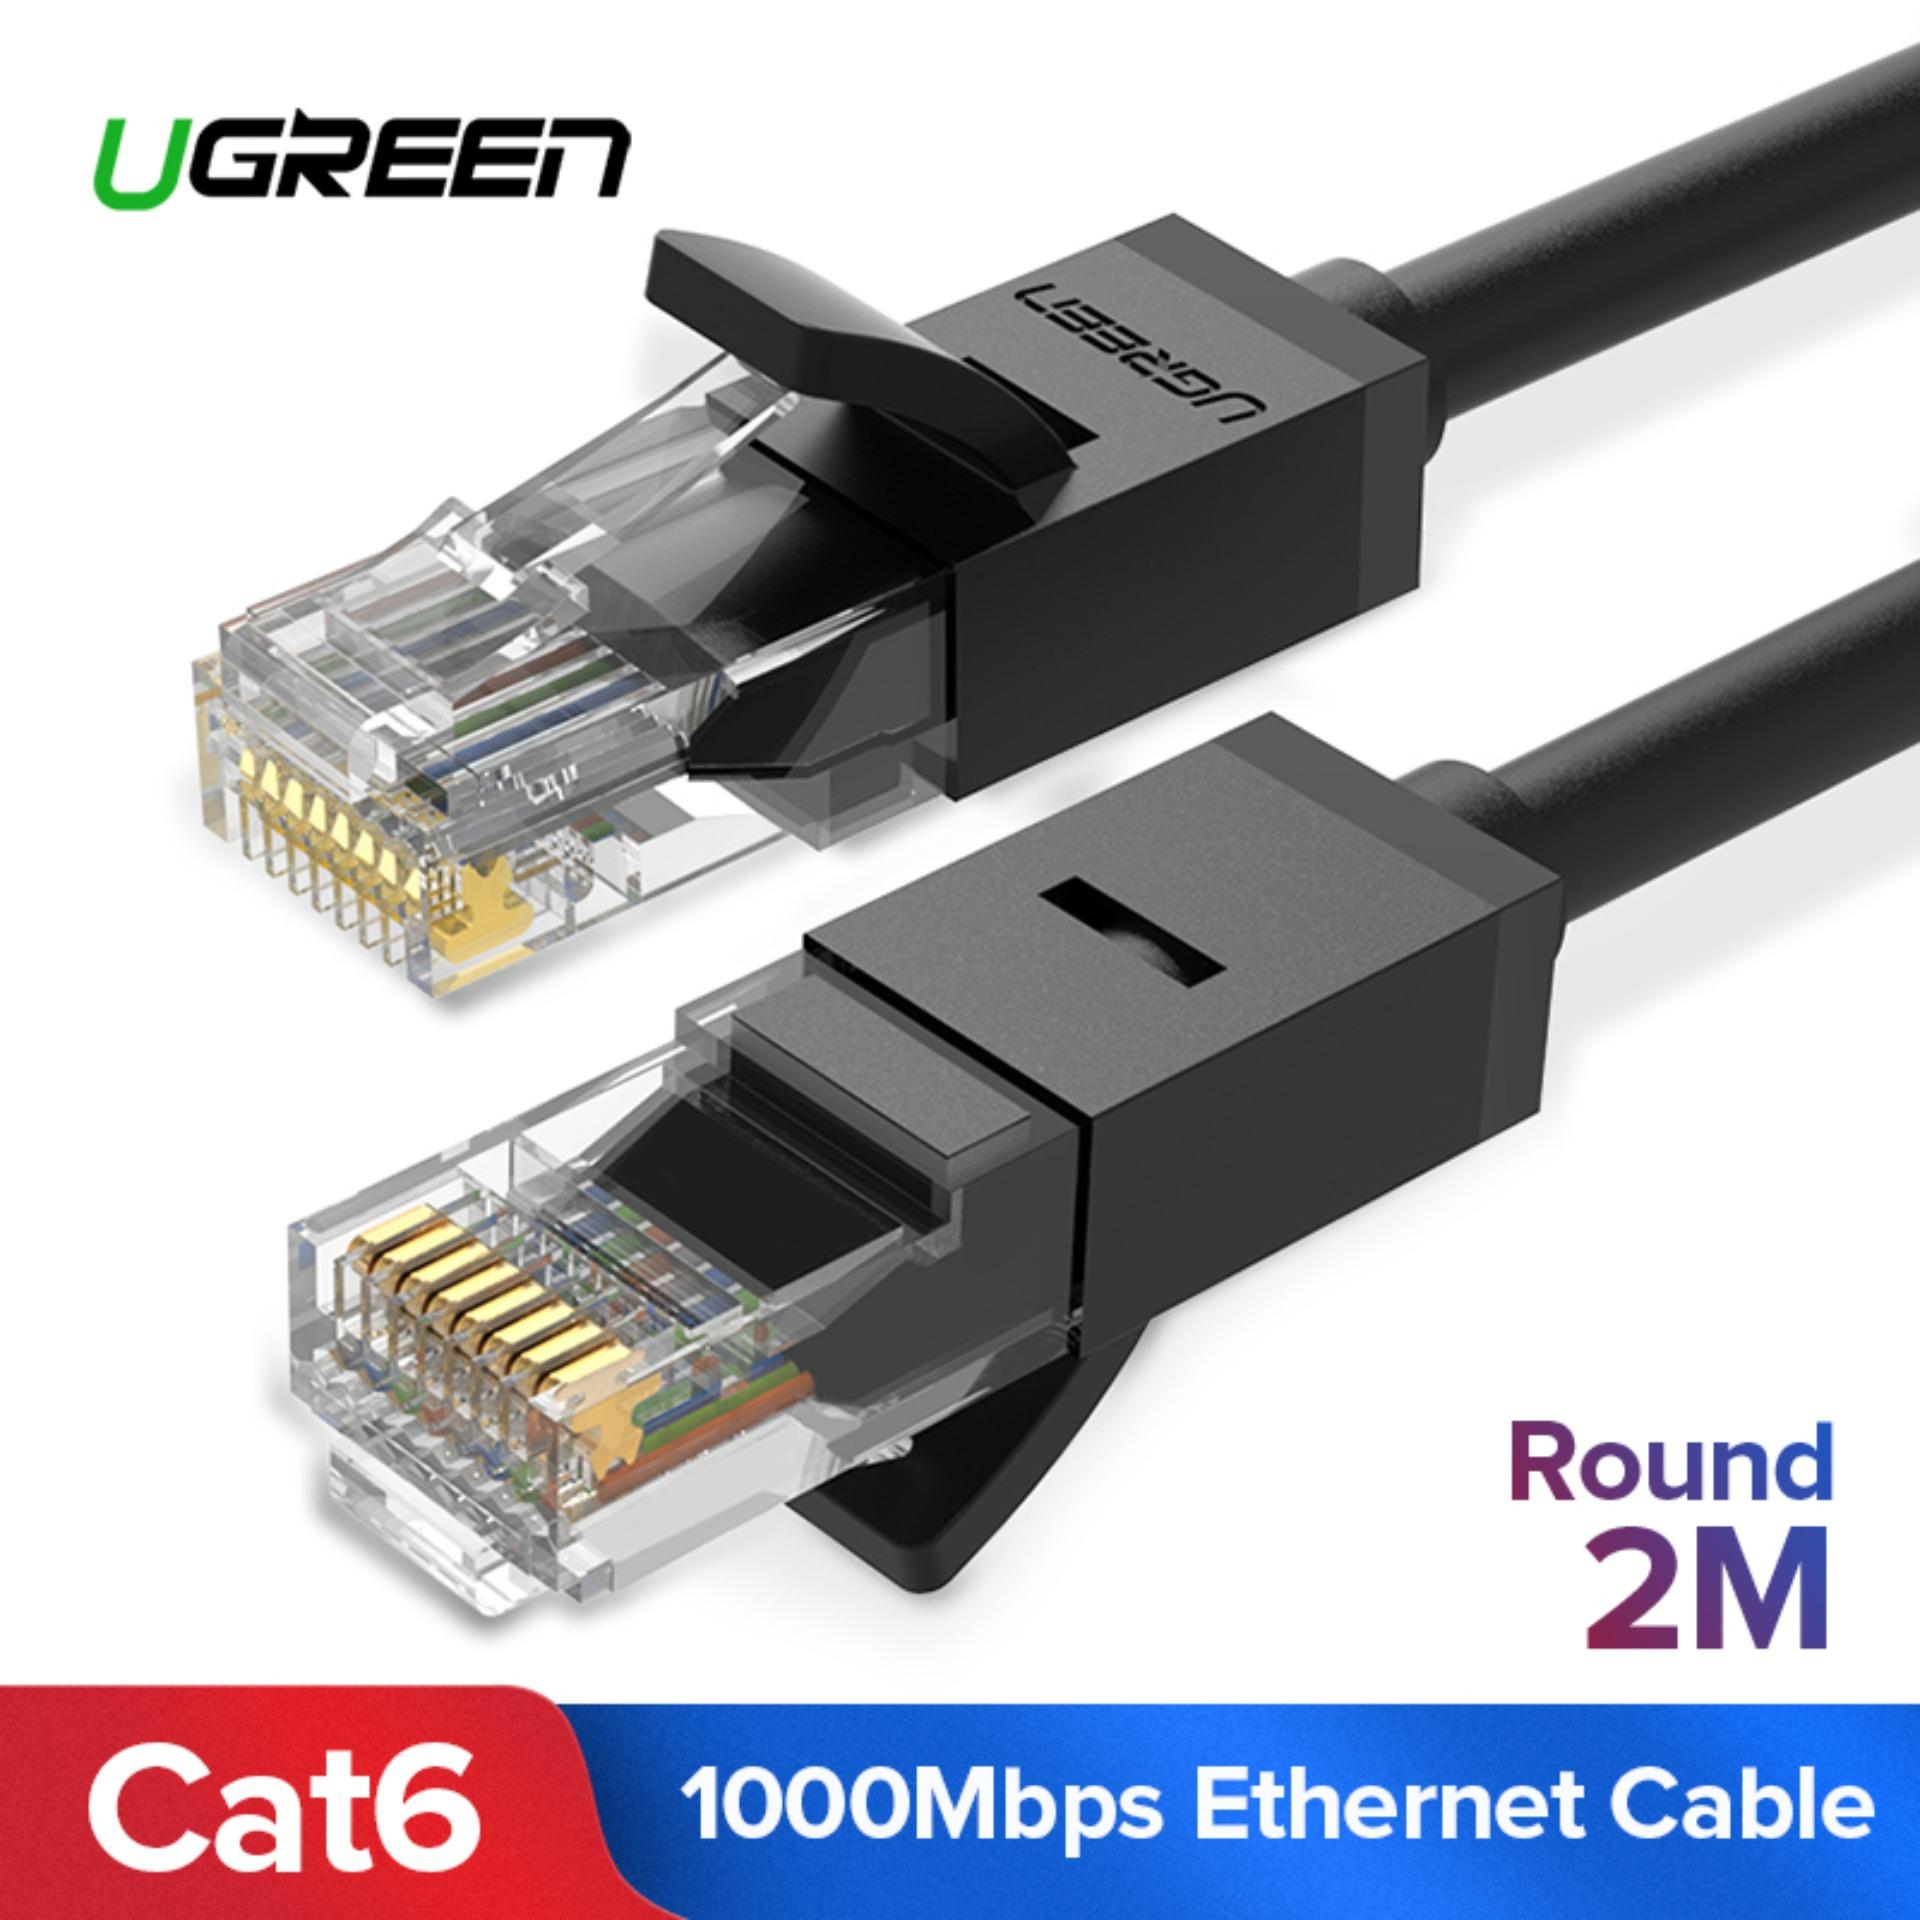 UGREEN 2Meter Cat6 Ethernet Patch Cable Gigabit RJ45 Network Wire Lan Cable Plug Connector for Mac, Computer, PC, Router, Modem, Printer, XBOX, PS4, PS3, PSP (Black)